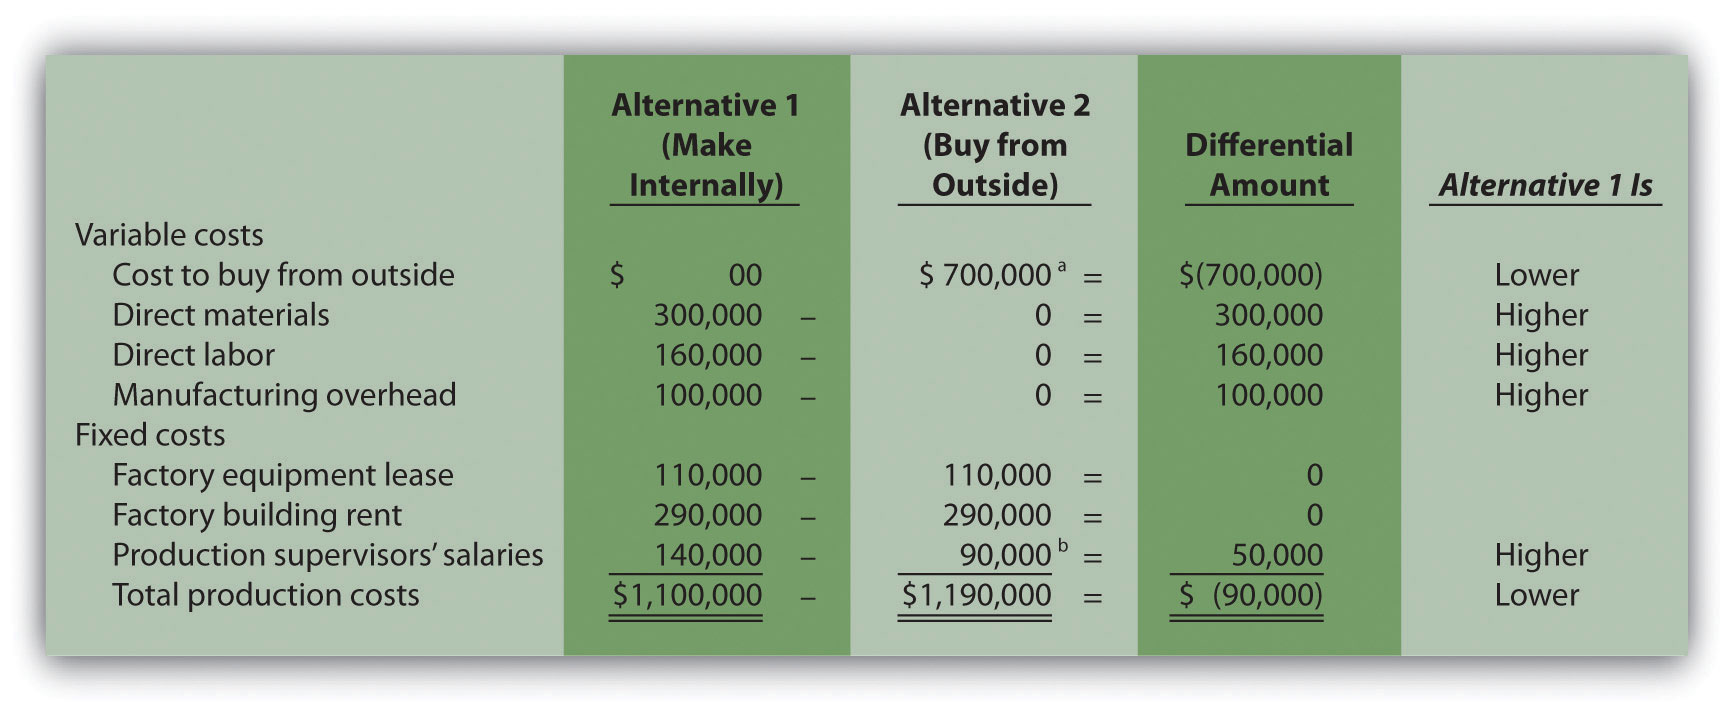 analyzing lease versus buy decisions simulations in the corporate world The cpa exam is changing to test candidates at a higher level, including updates  to both structure and content but what do these higher order skills require of.